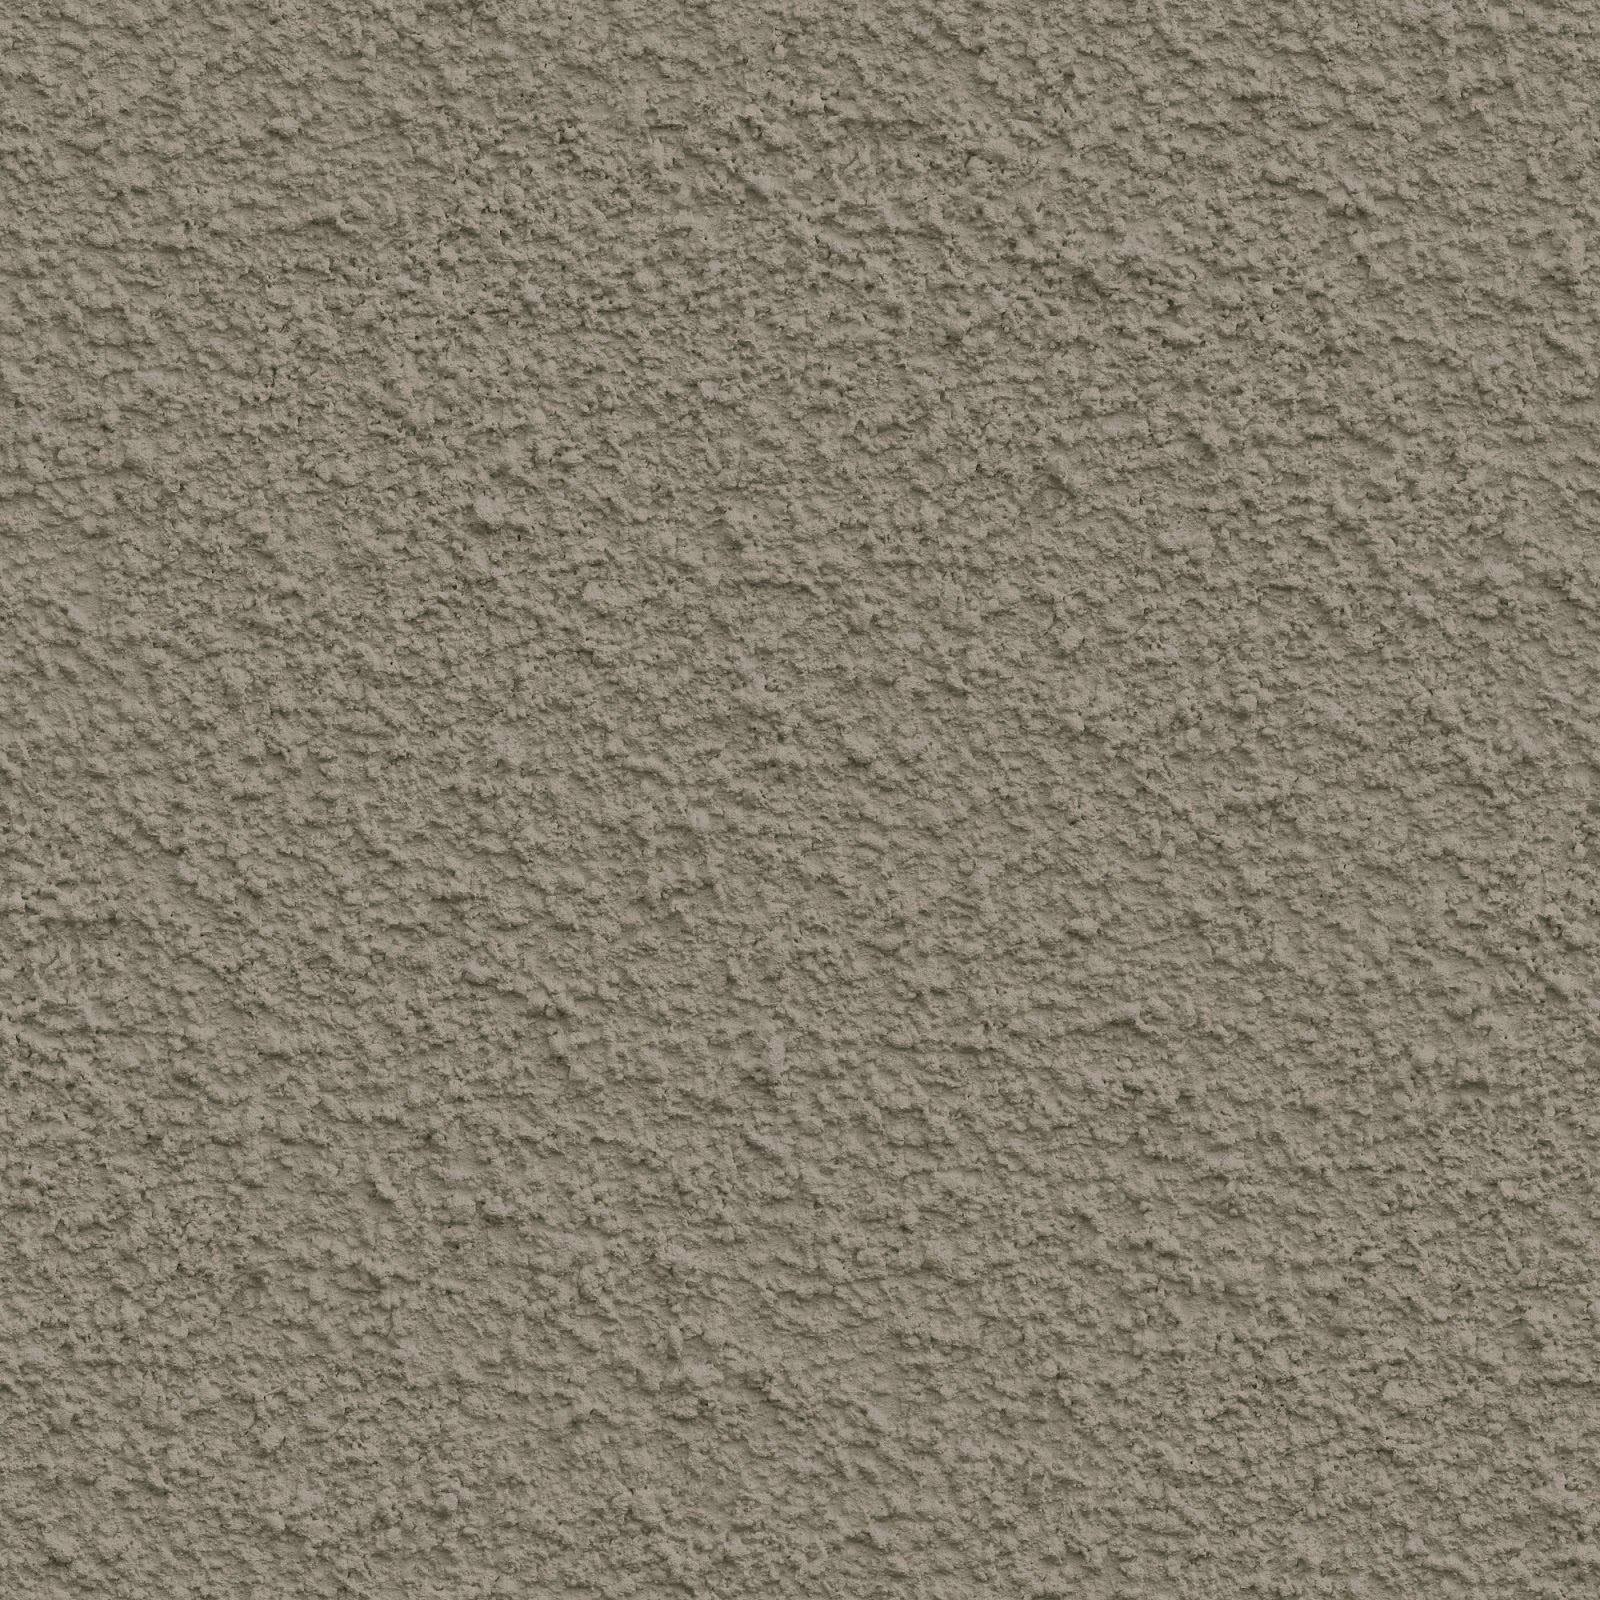 Wall paint texture seamless - Tileable Stucco Wall Texture 16